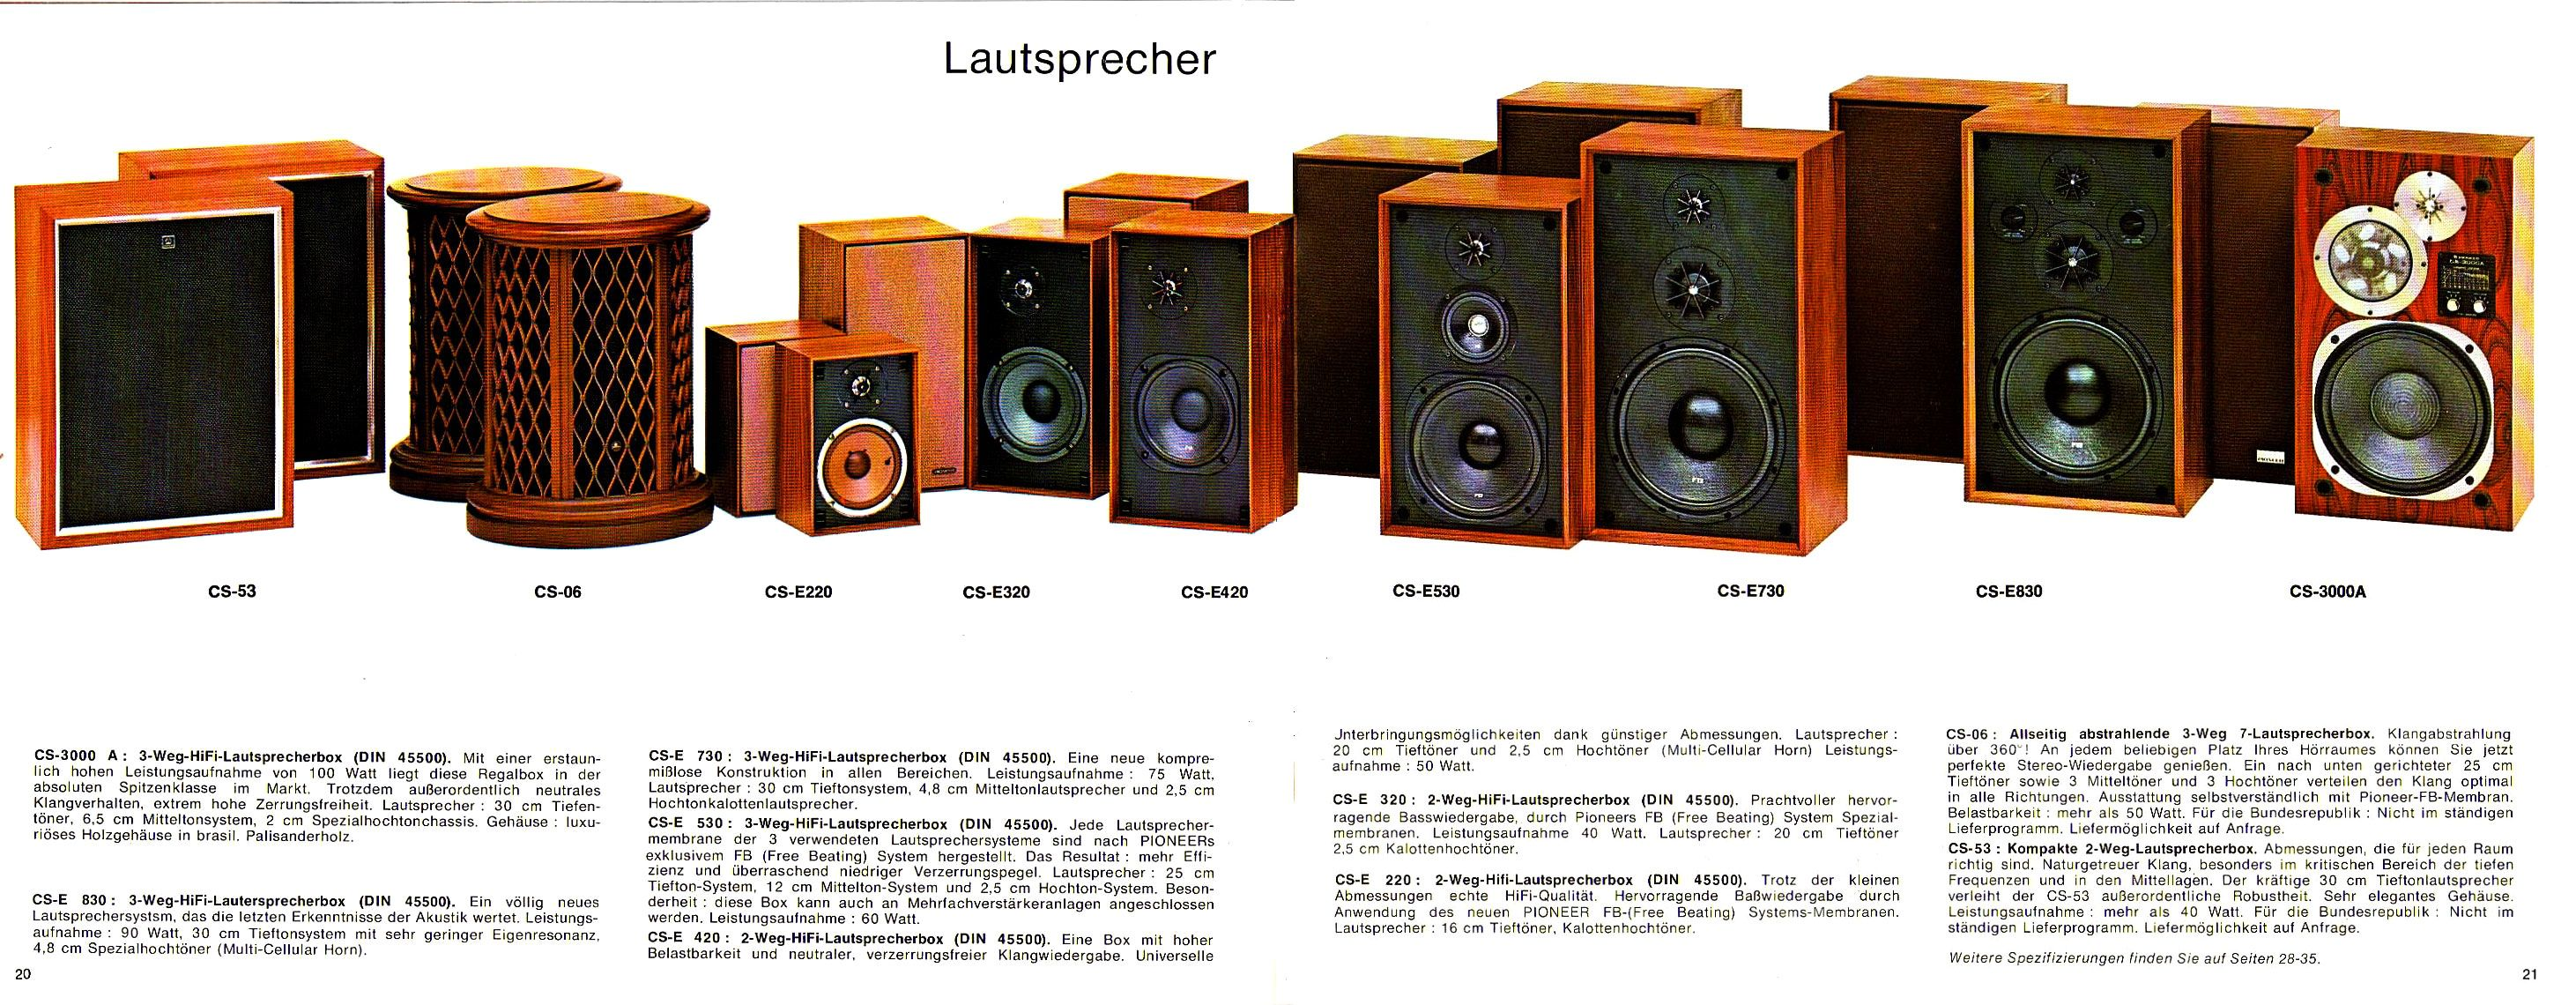 vintage pioneer 12 inch coaxial speakers. Black Bedroom Furniture Sets. Home Design Ideas